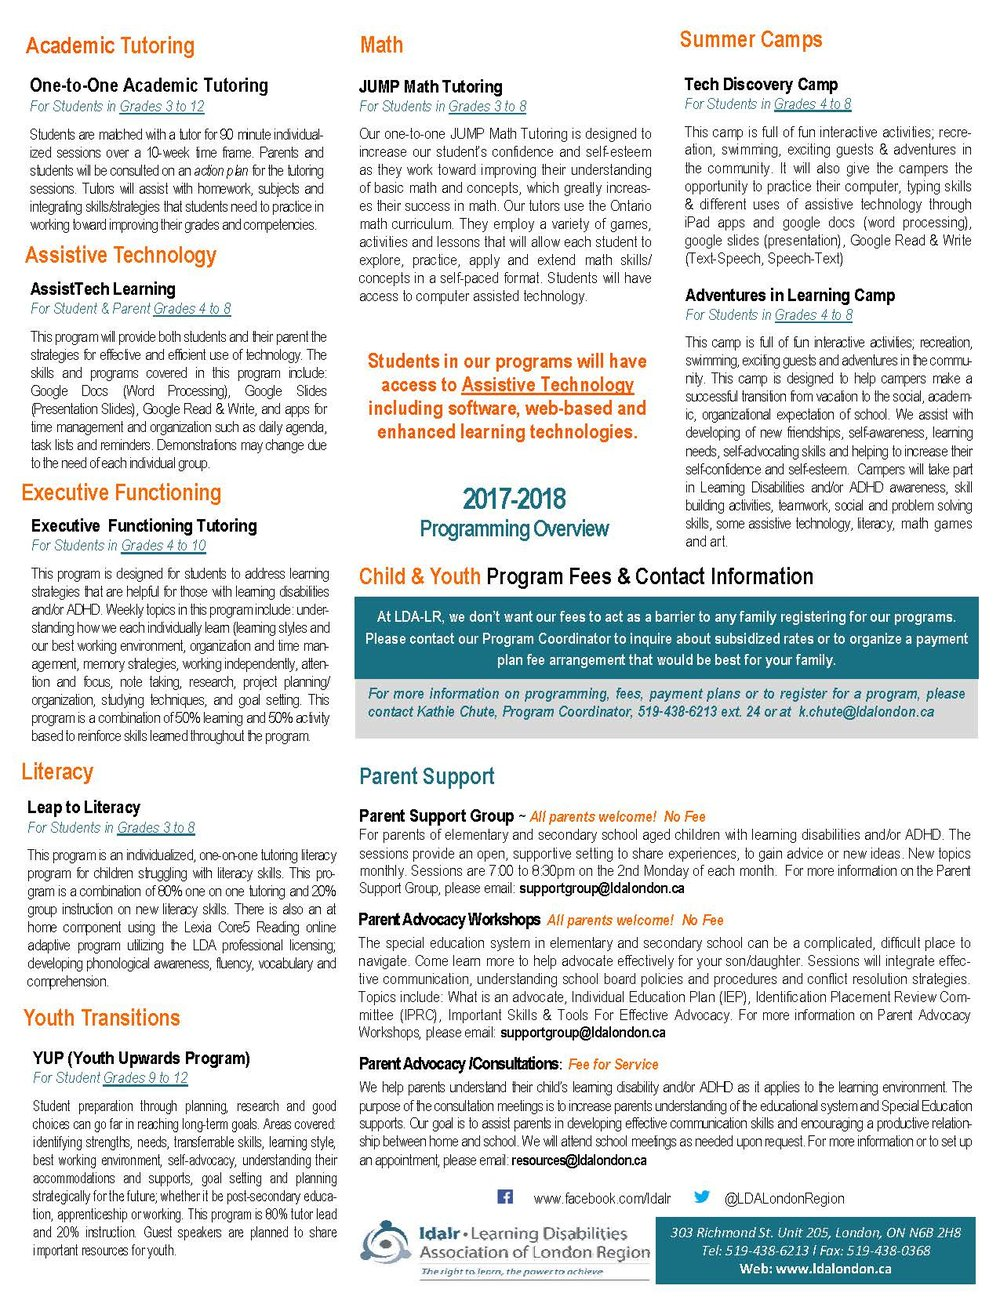 Overview 2017-2018_Page_1.jpg